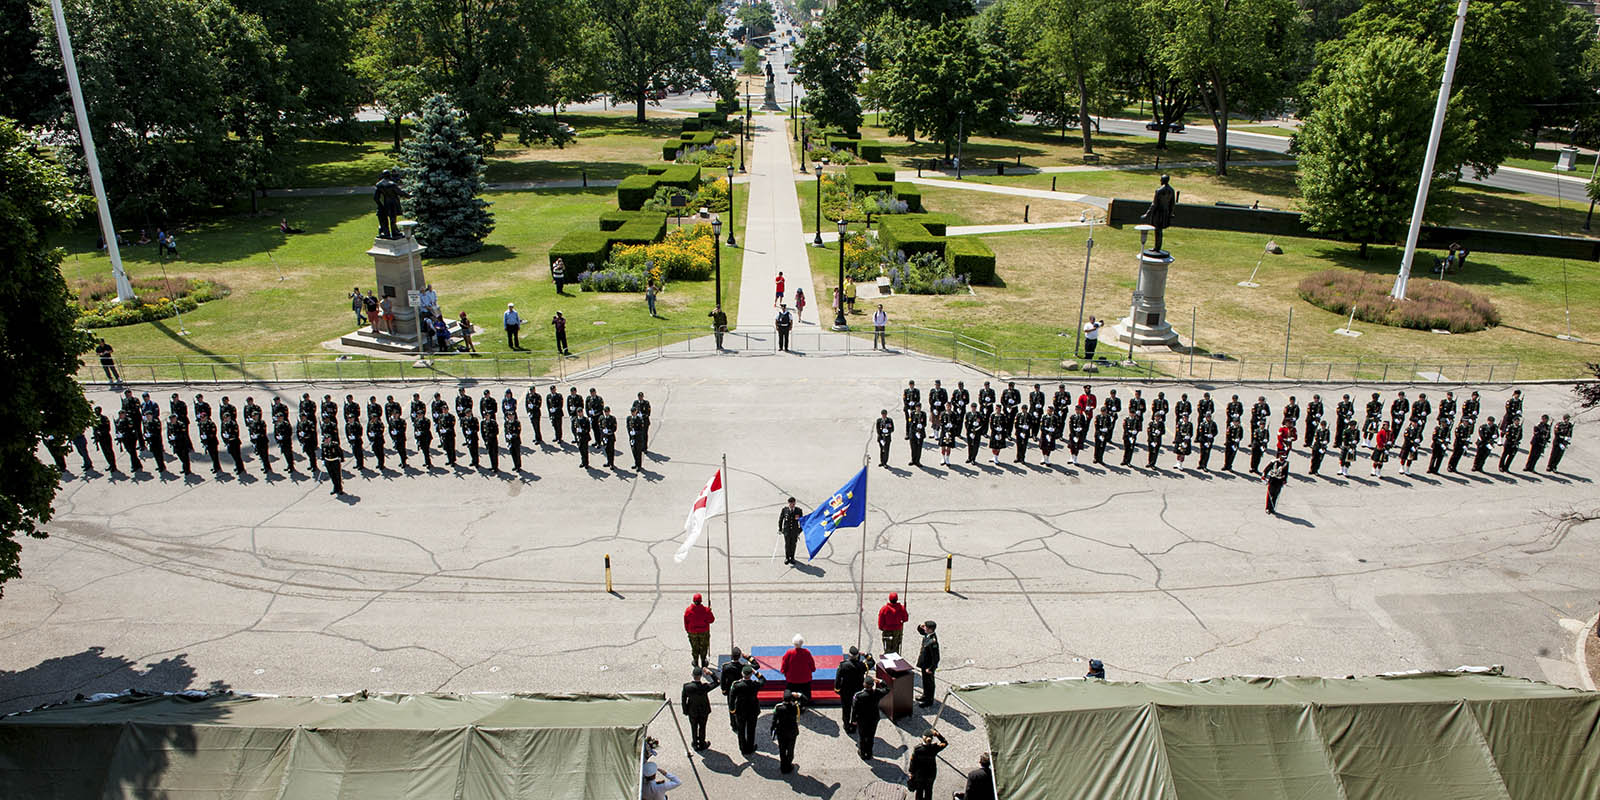 4th Canadian Division change of command ceremony